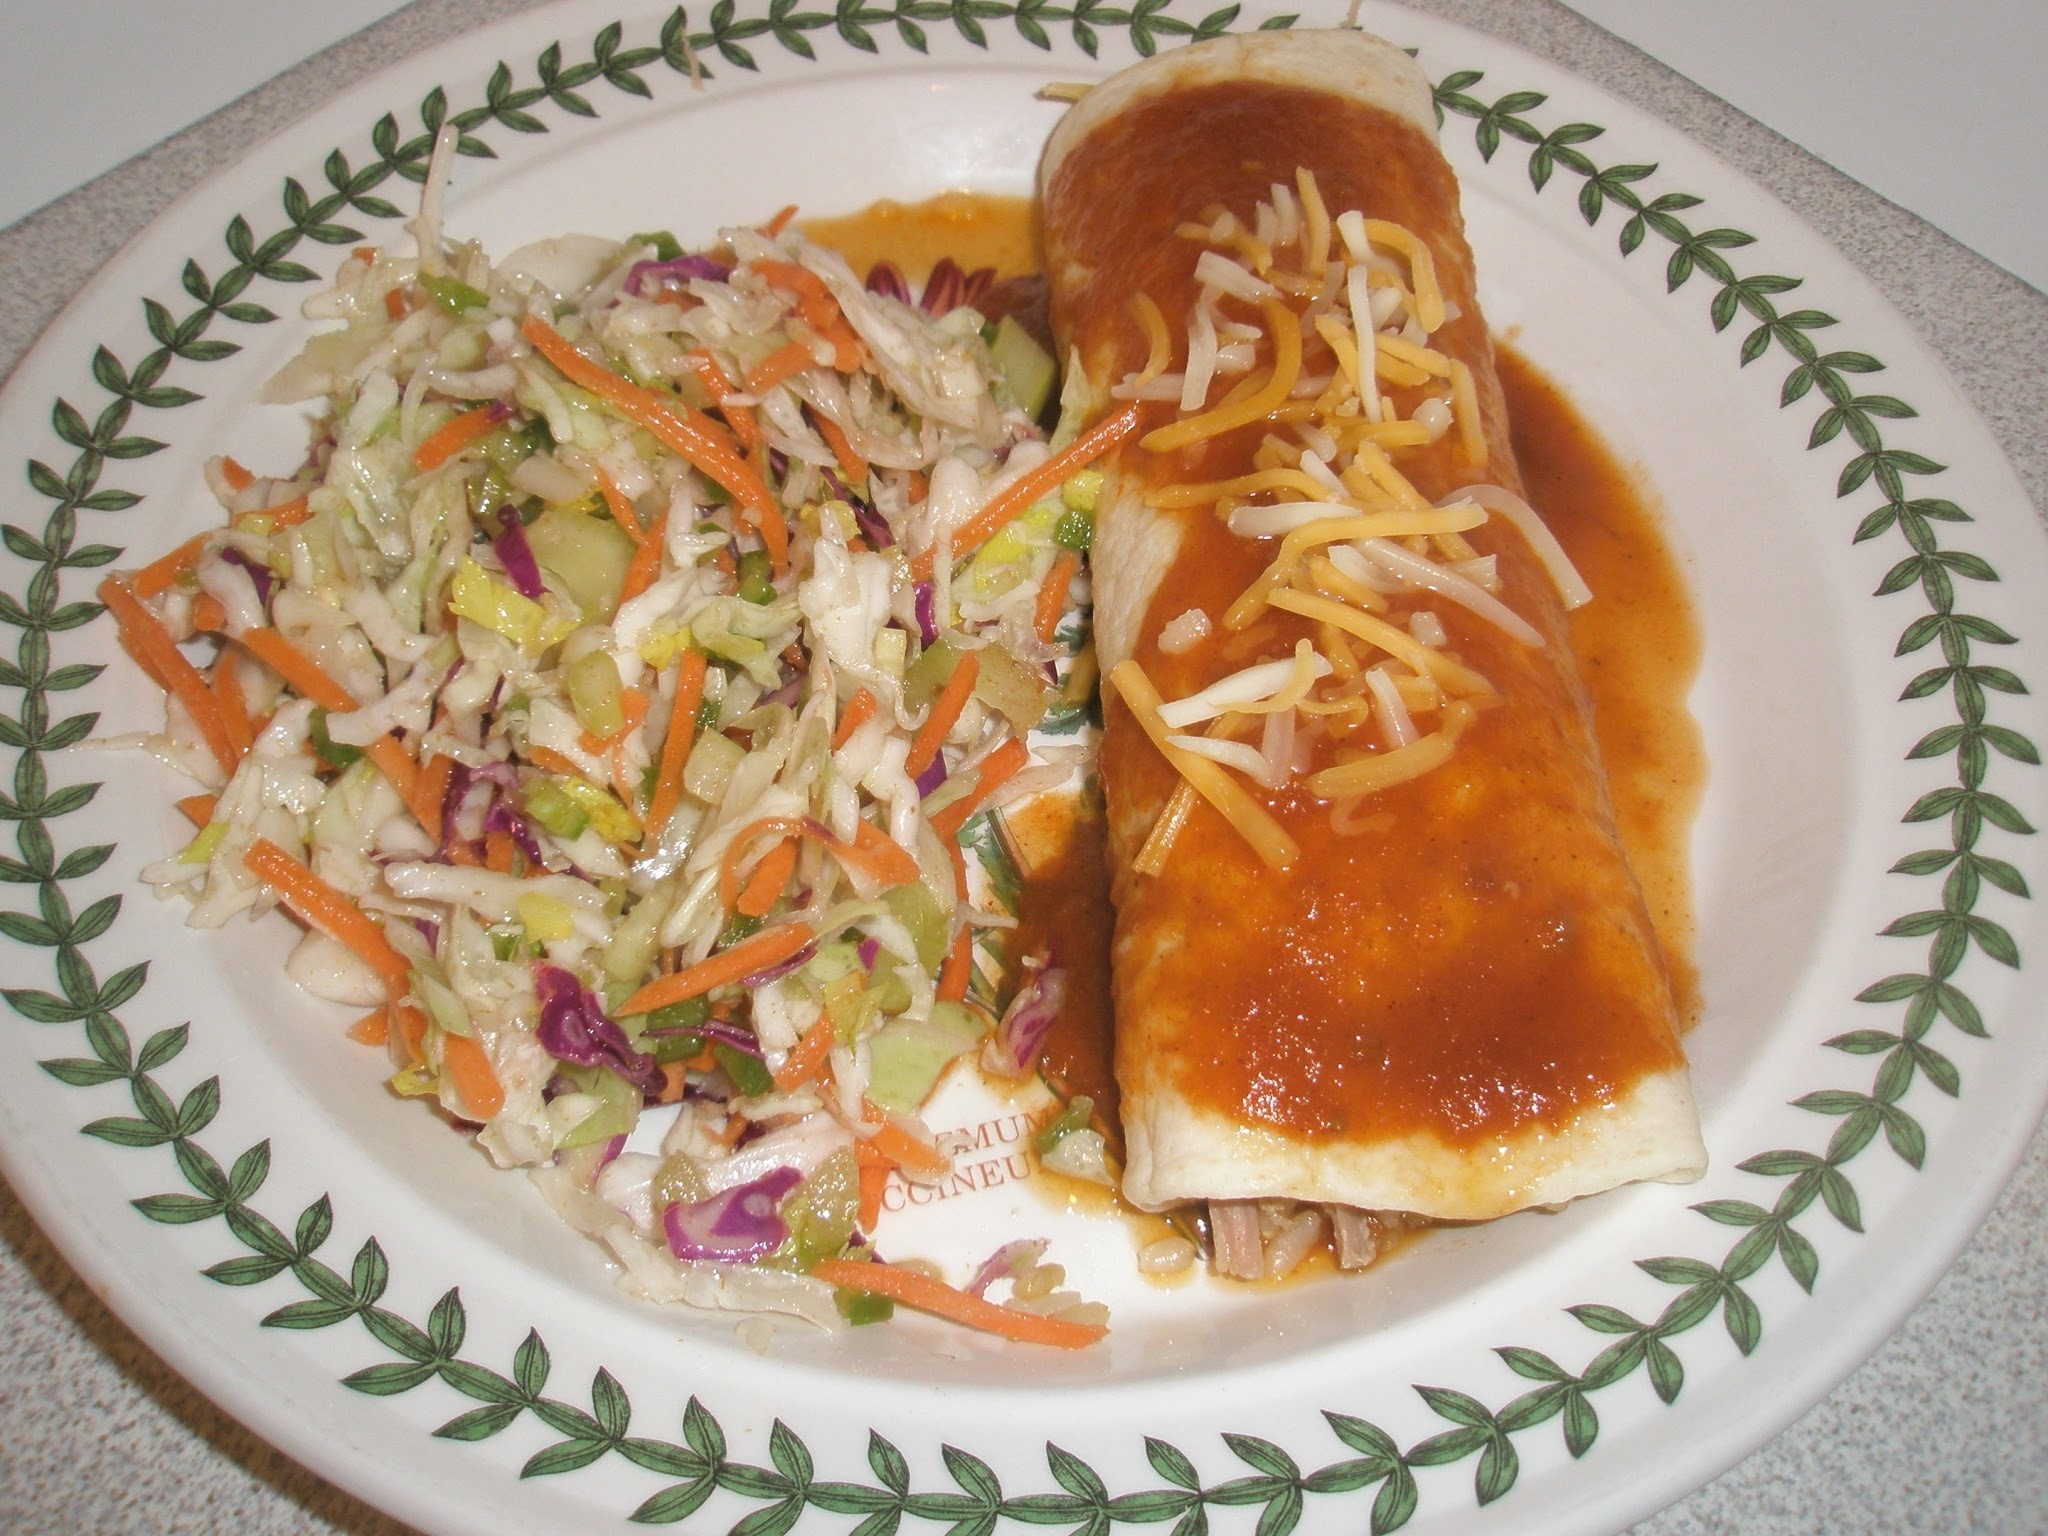 Ranchero Shredded Pork